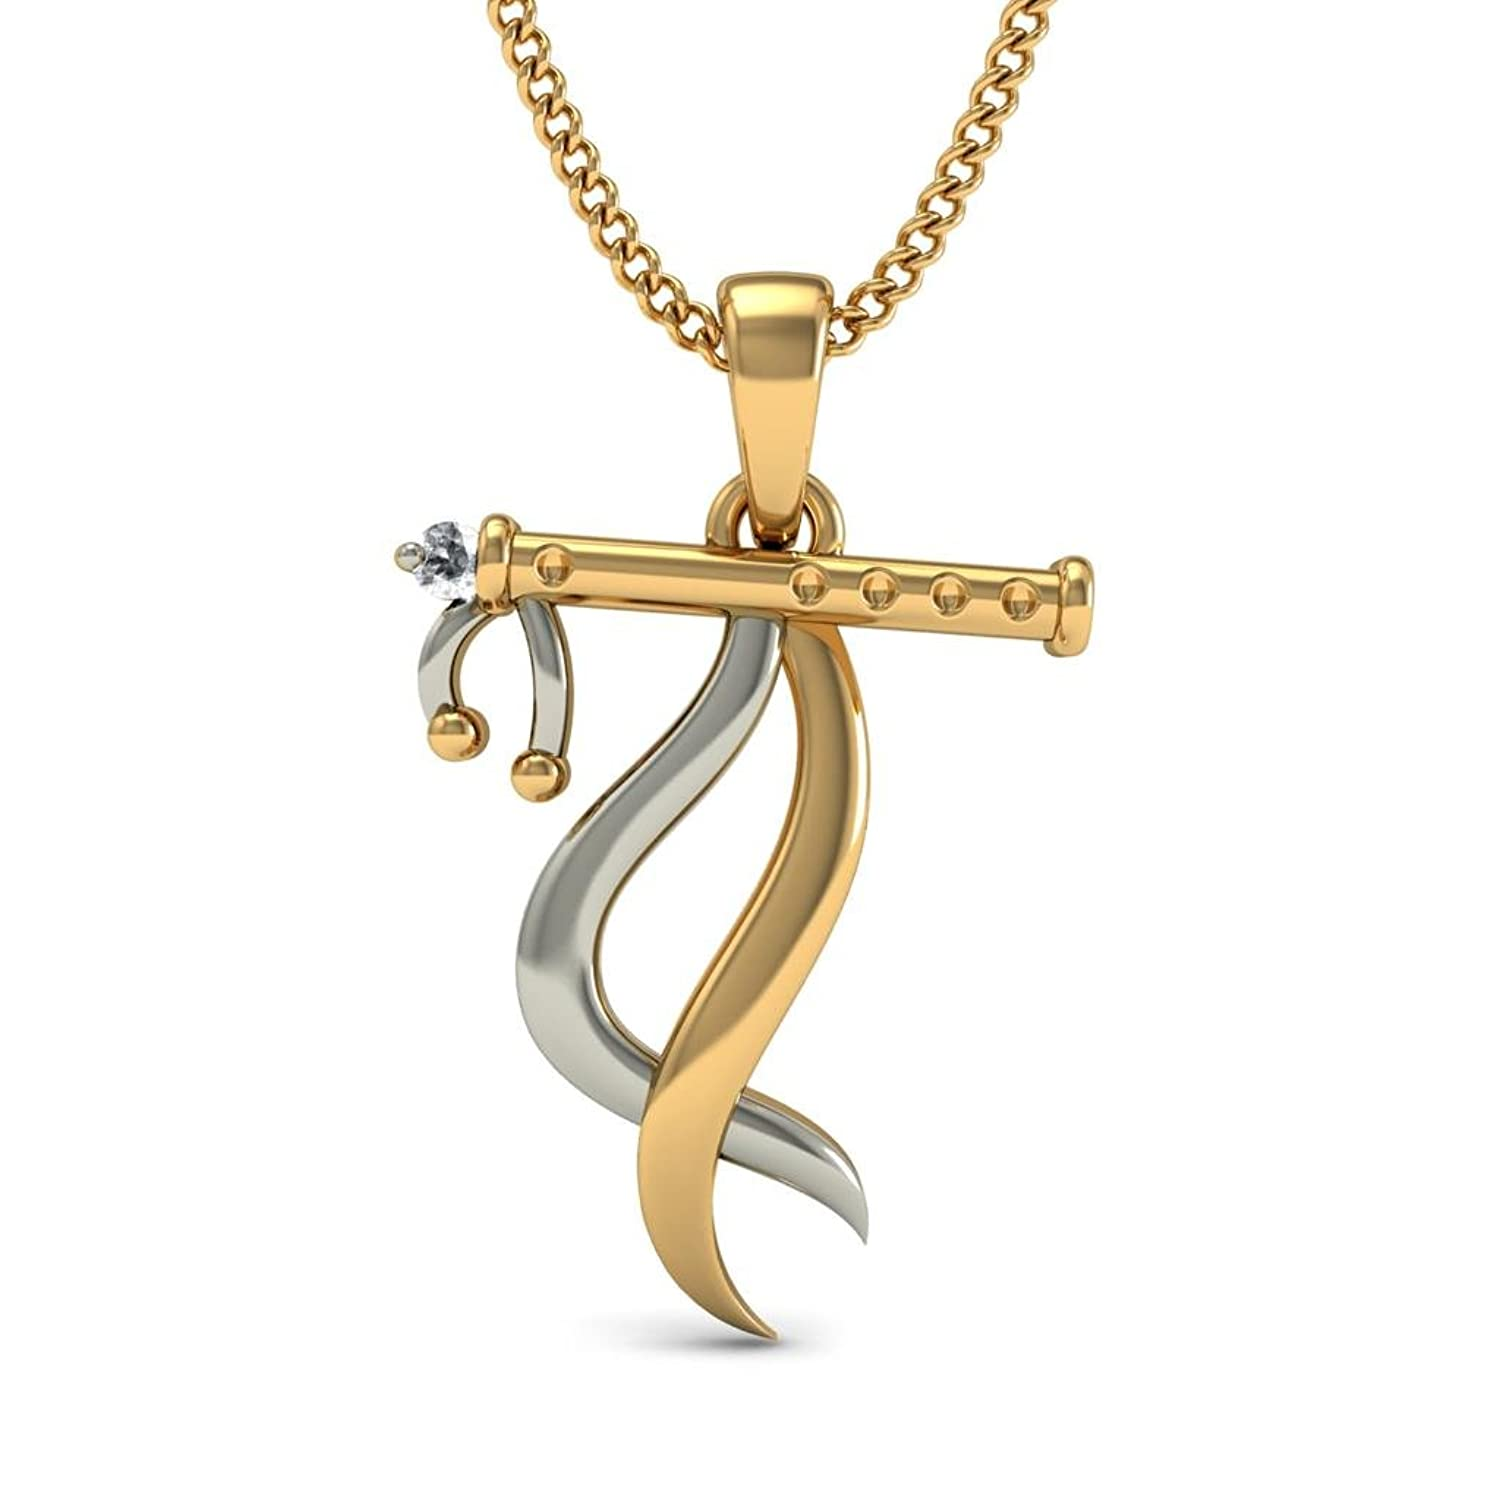 Buy BlueStone 14K Yellow Gold and Diamond Pendant Online at Low ...